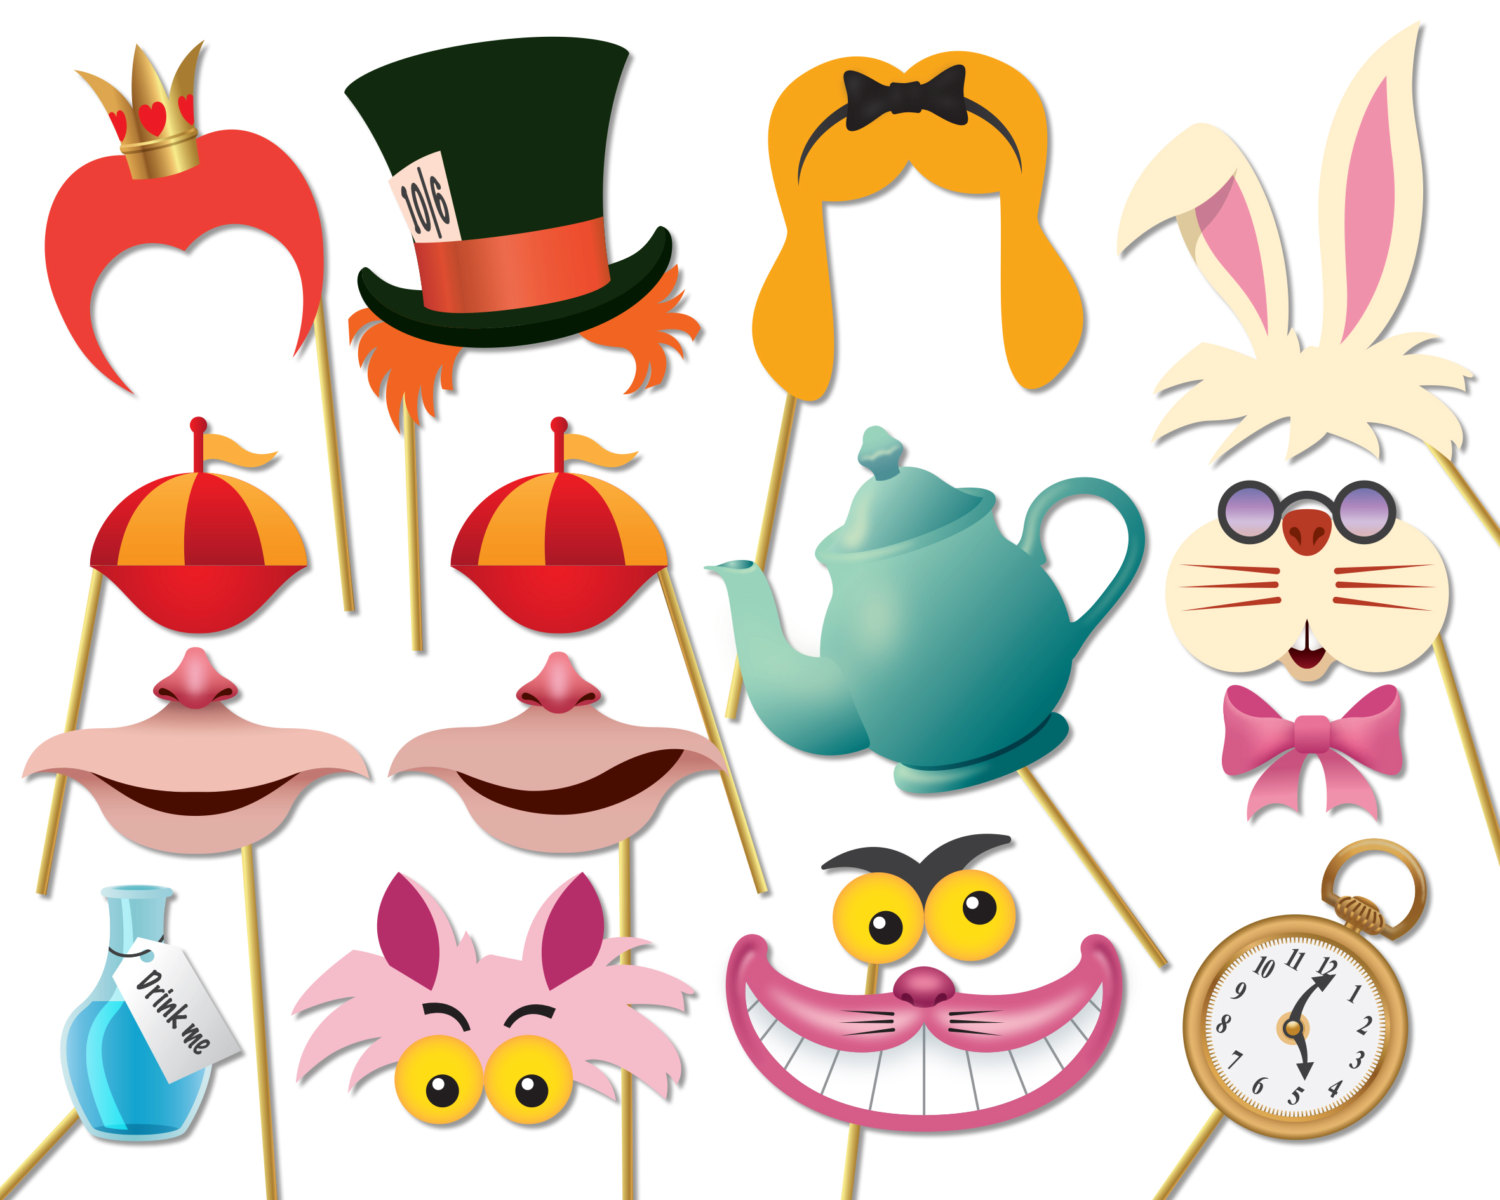 Butterfly clipart alice in wonderland Wonderland props booth photo in